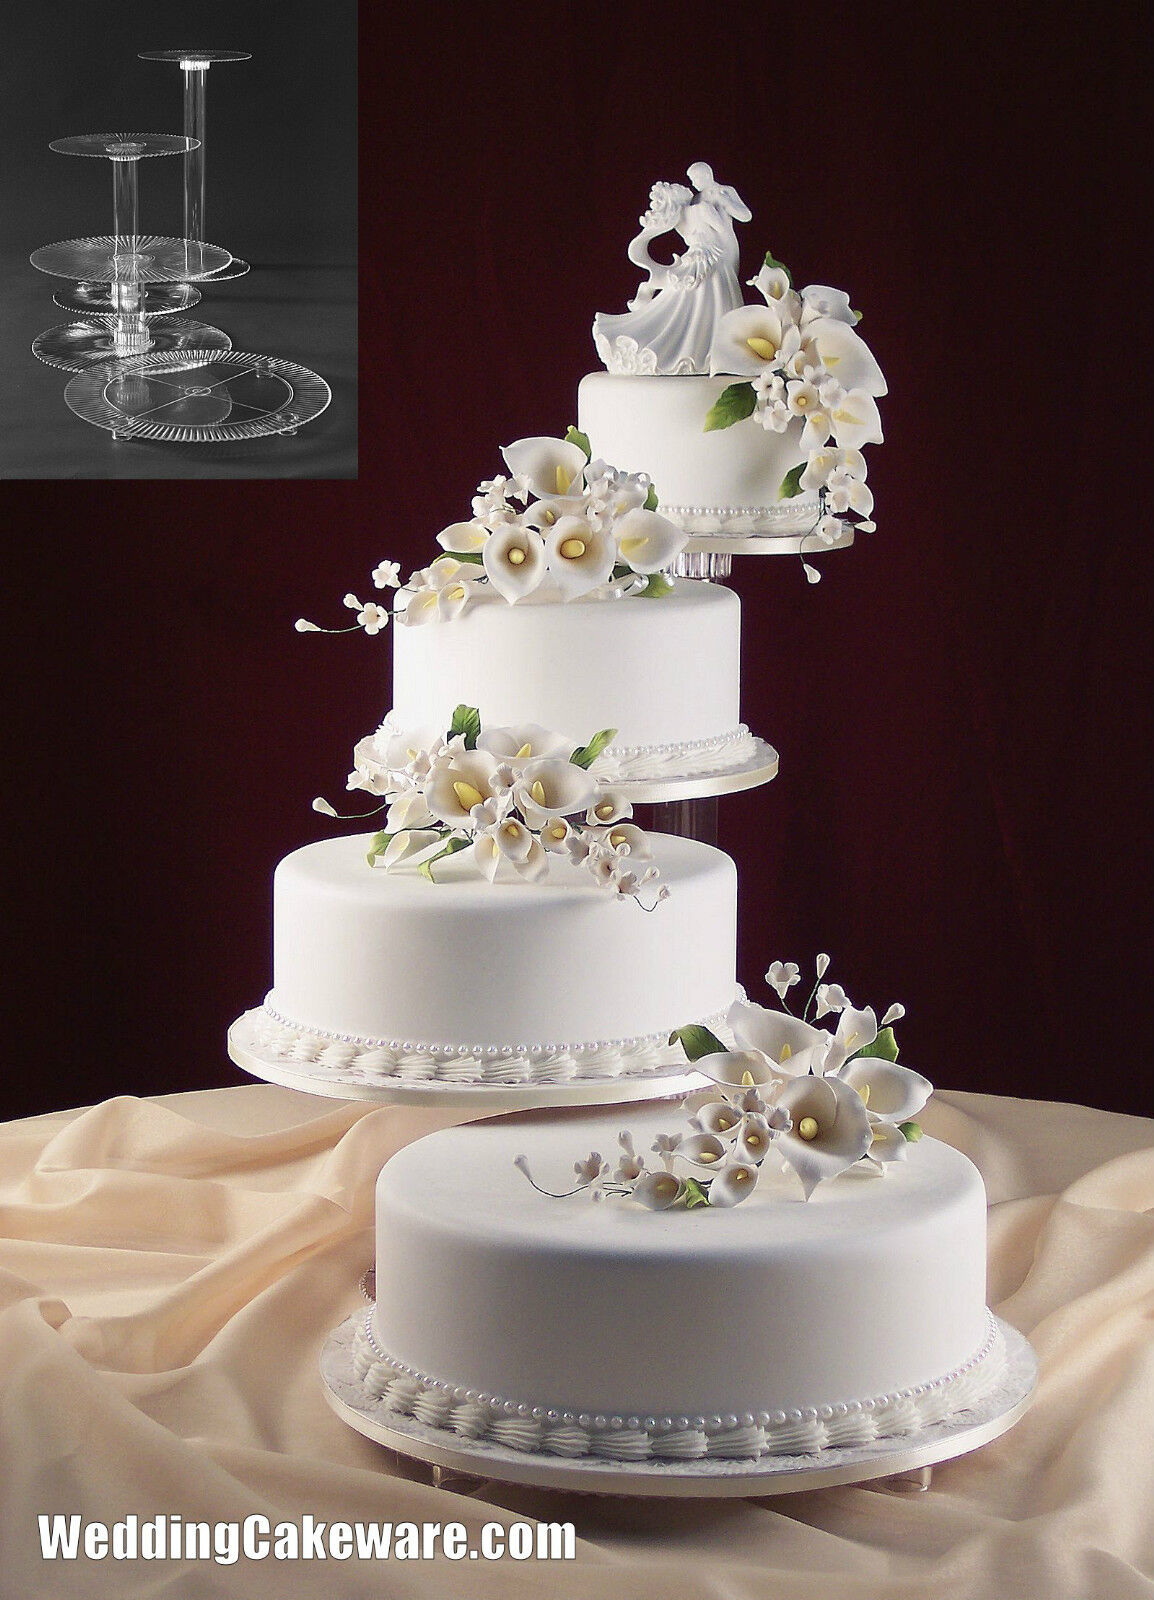 3 tier wedding cake stand ideas wedding cakes stands bling wedding cake stand drum 18 10315